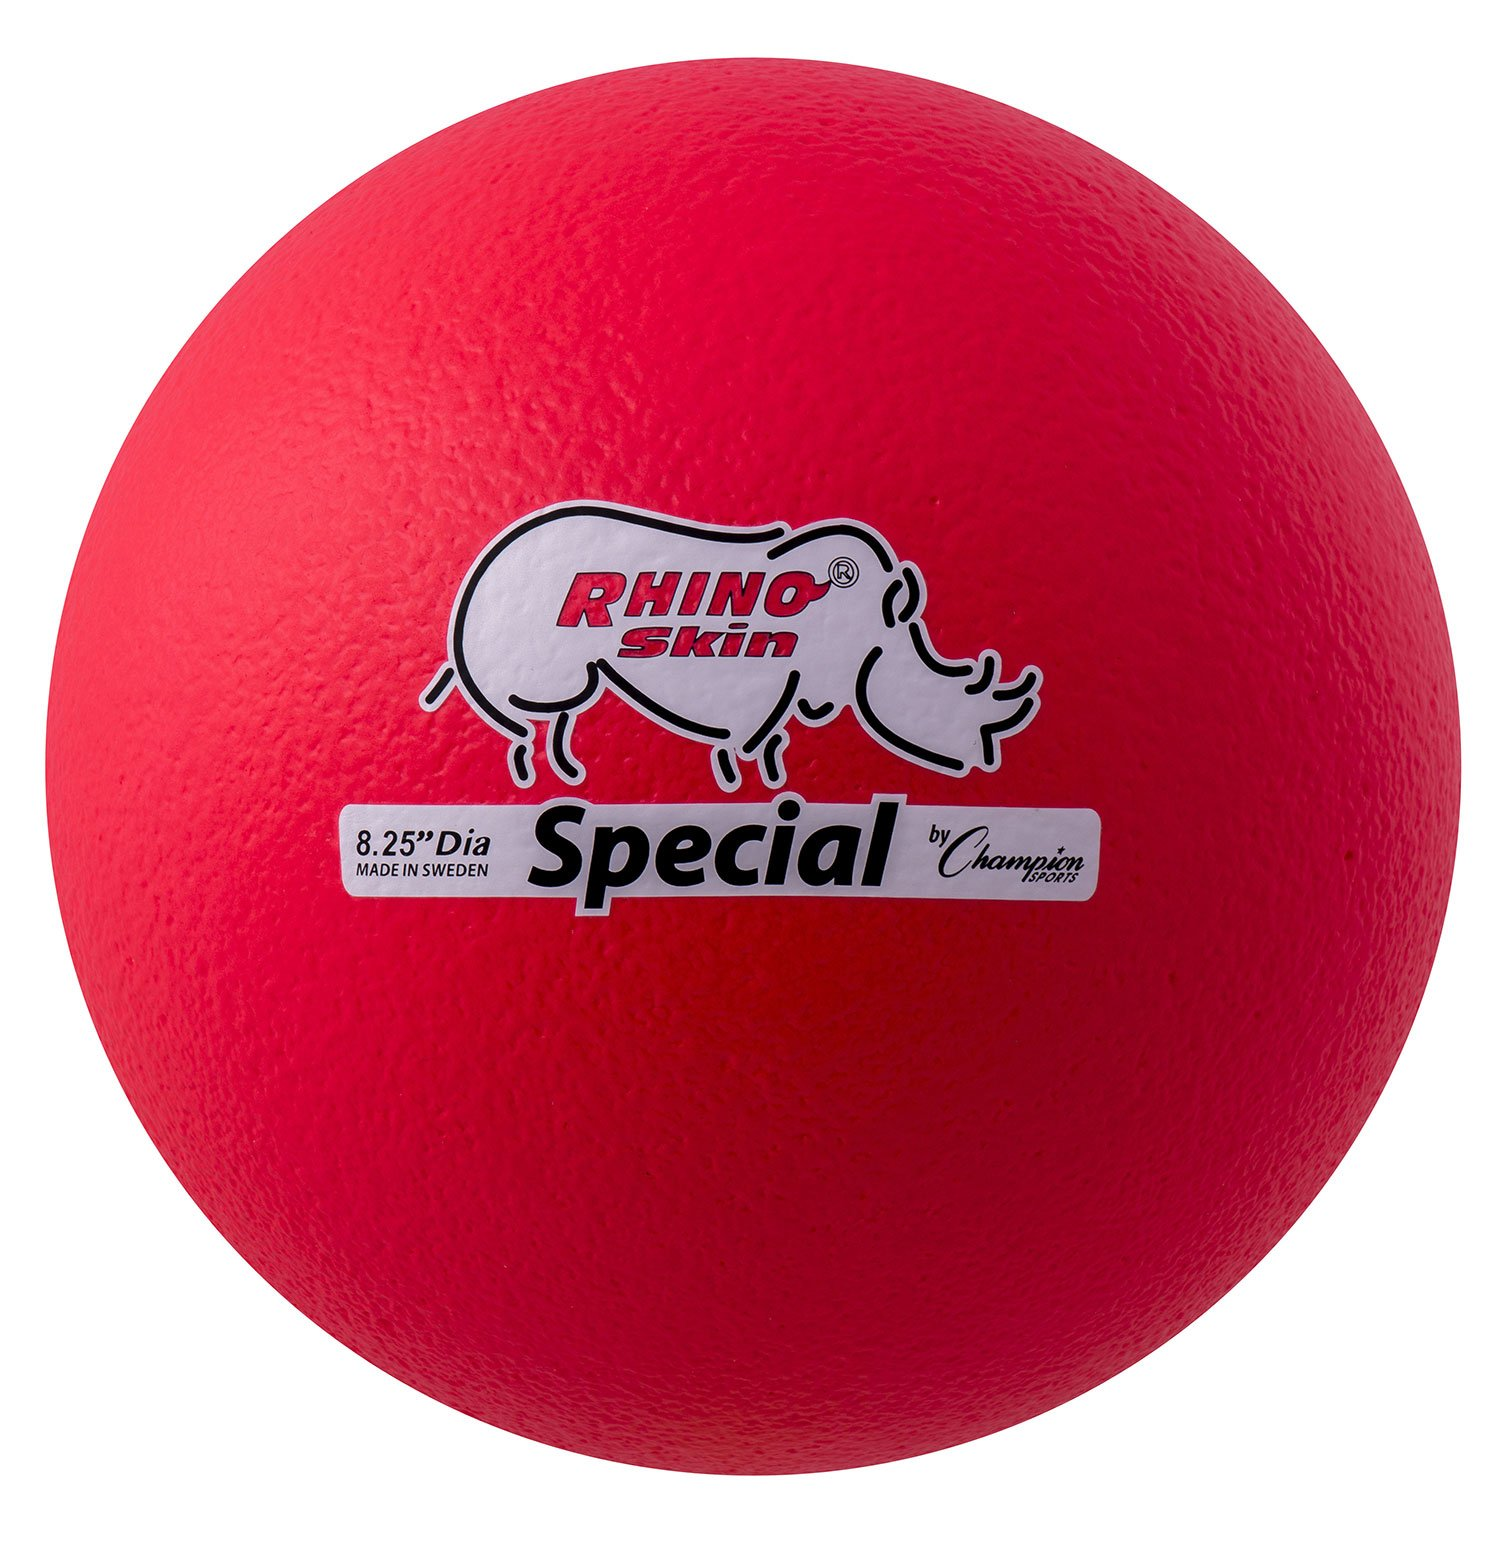 Champion Sports Rhino Skin Special Ball (Neon Red) by Champion Sports